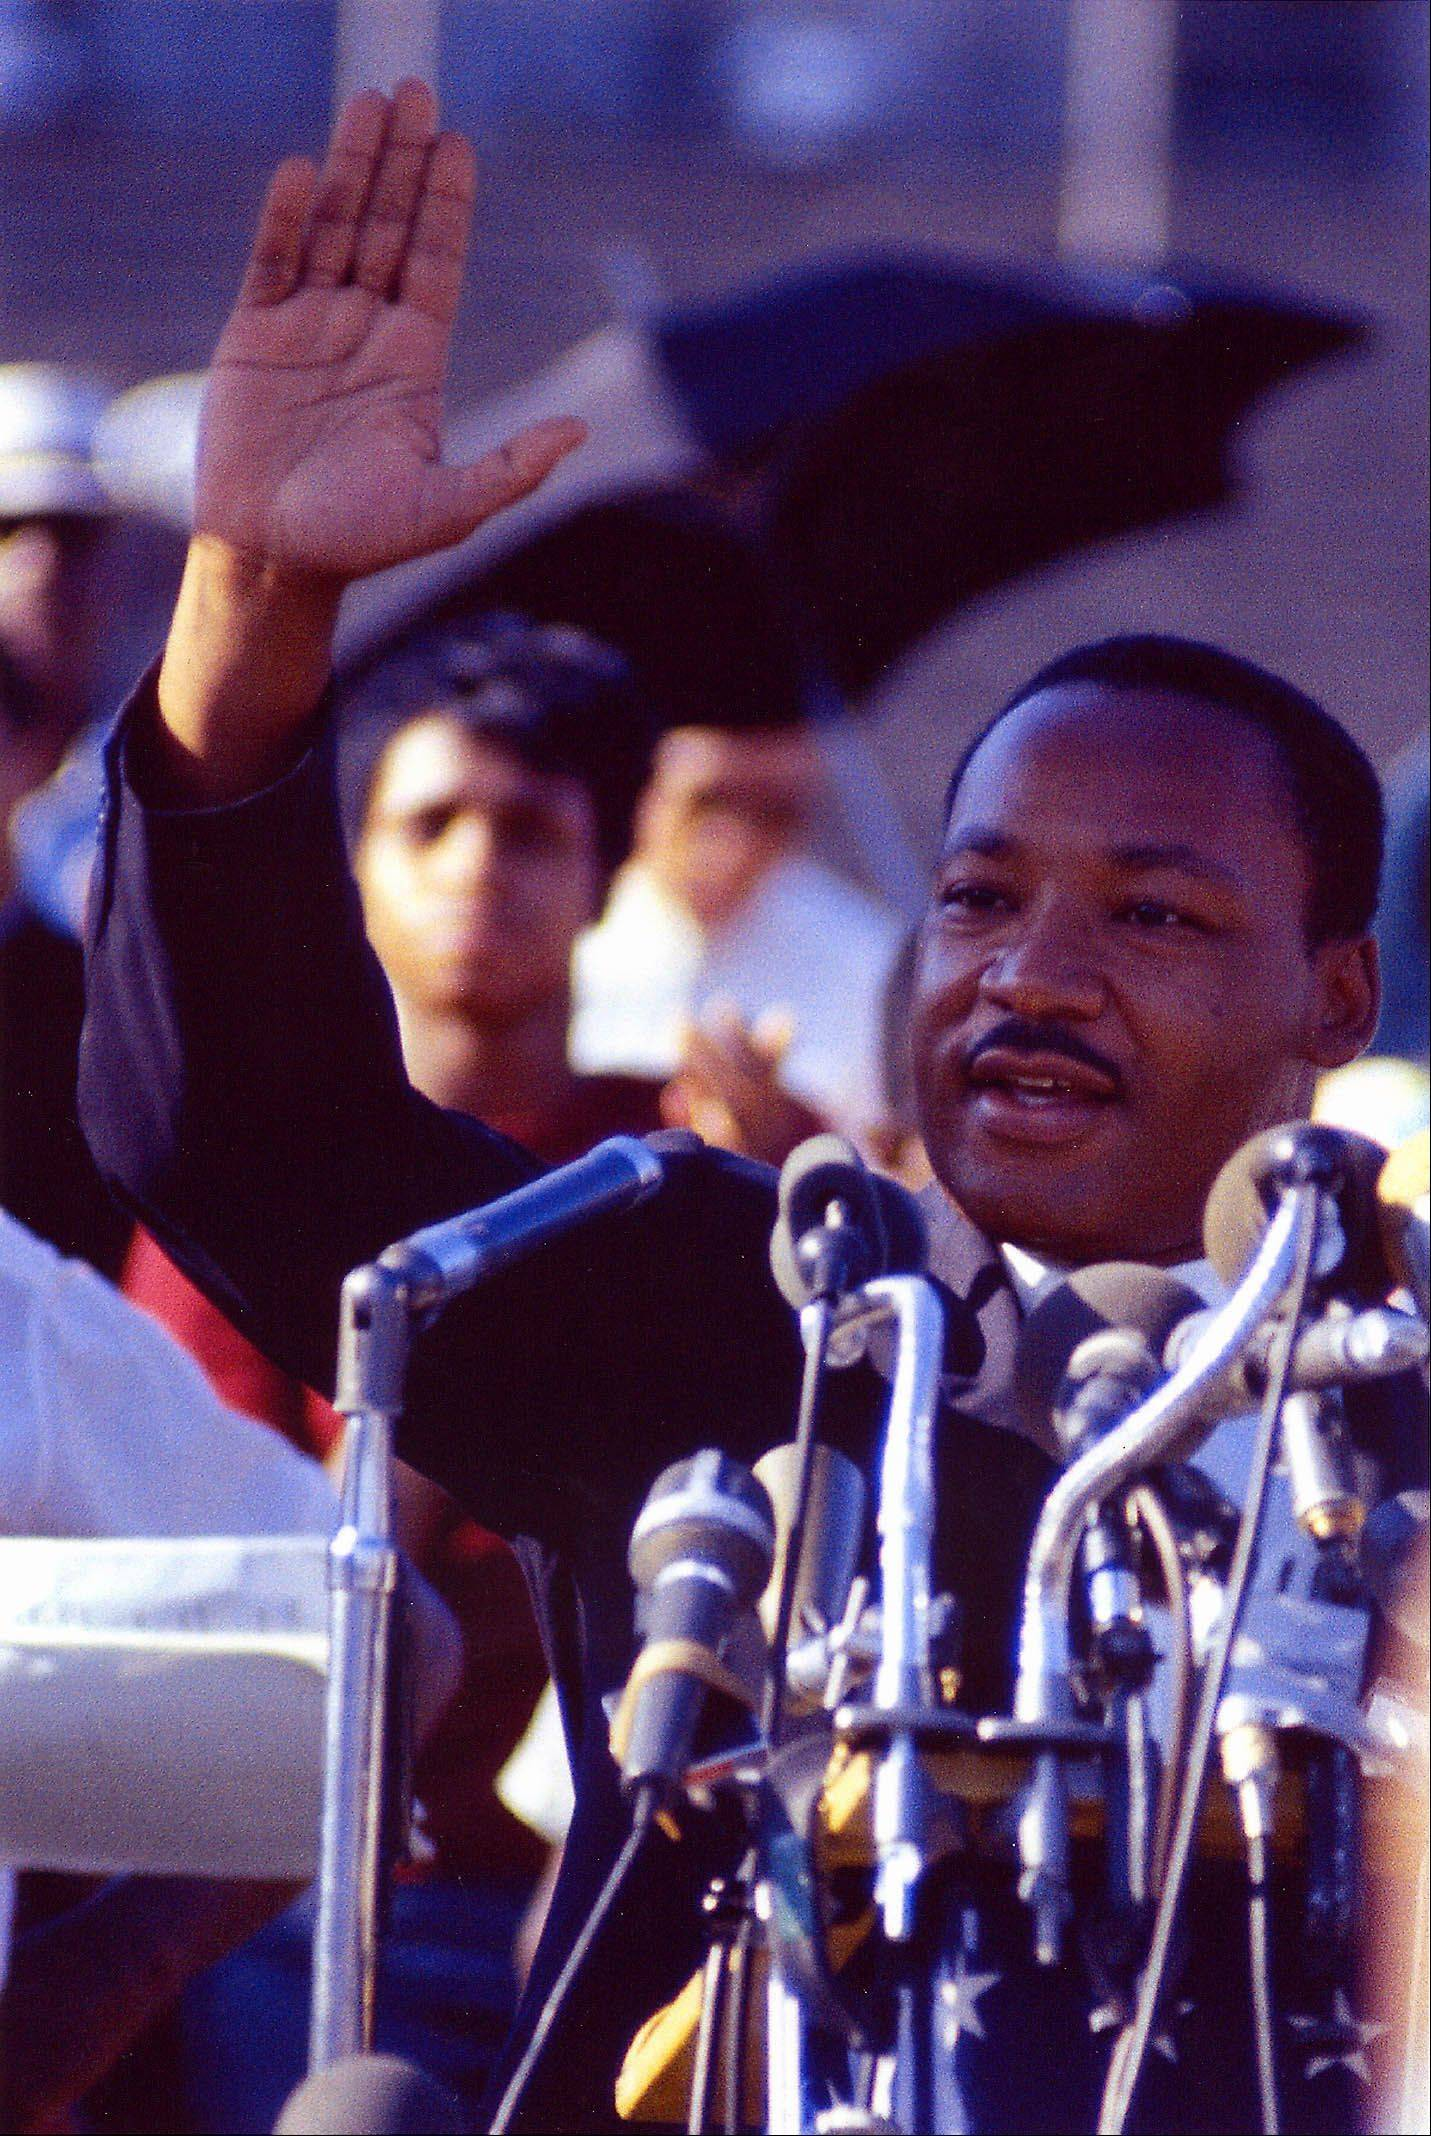 Martin Luther King, Jr., raises his hand to the crowd while speaking at Soldier Field in this undated photo.